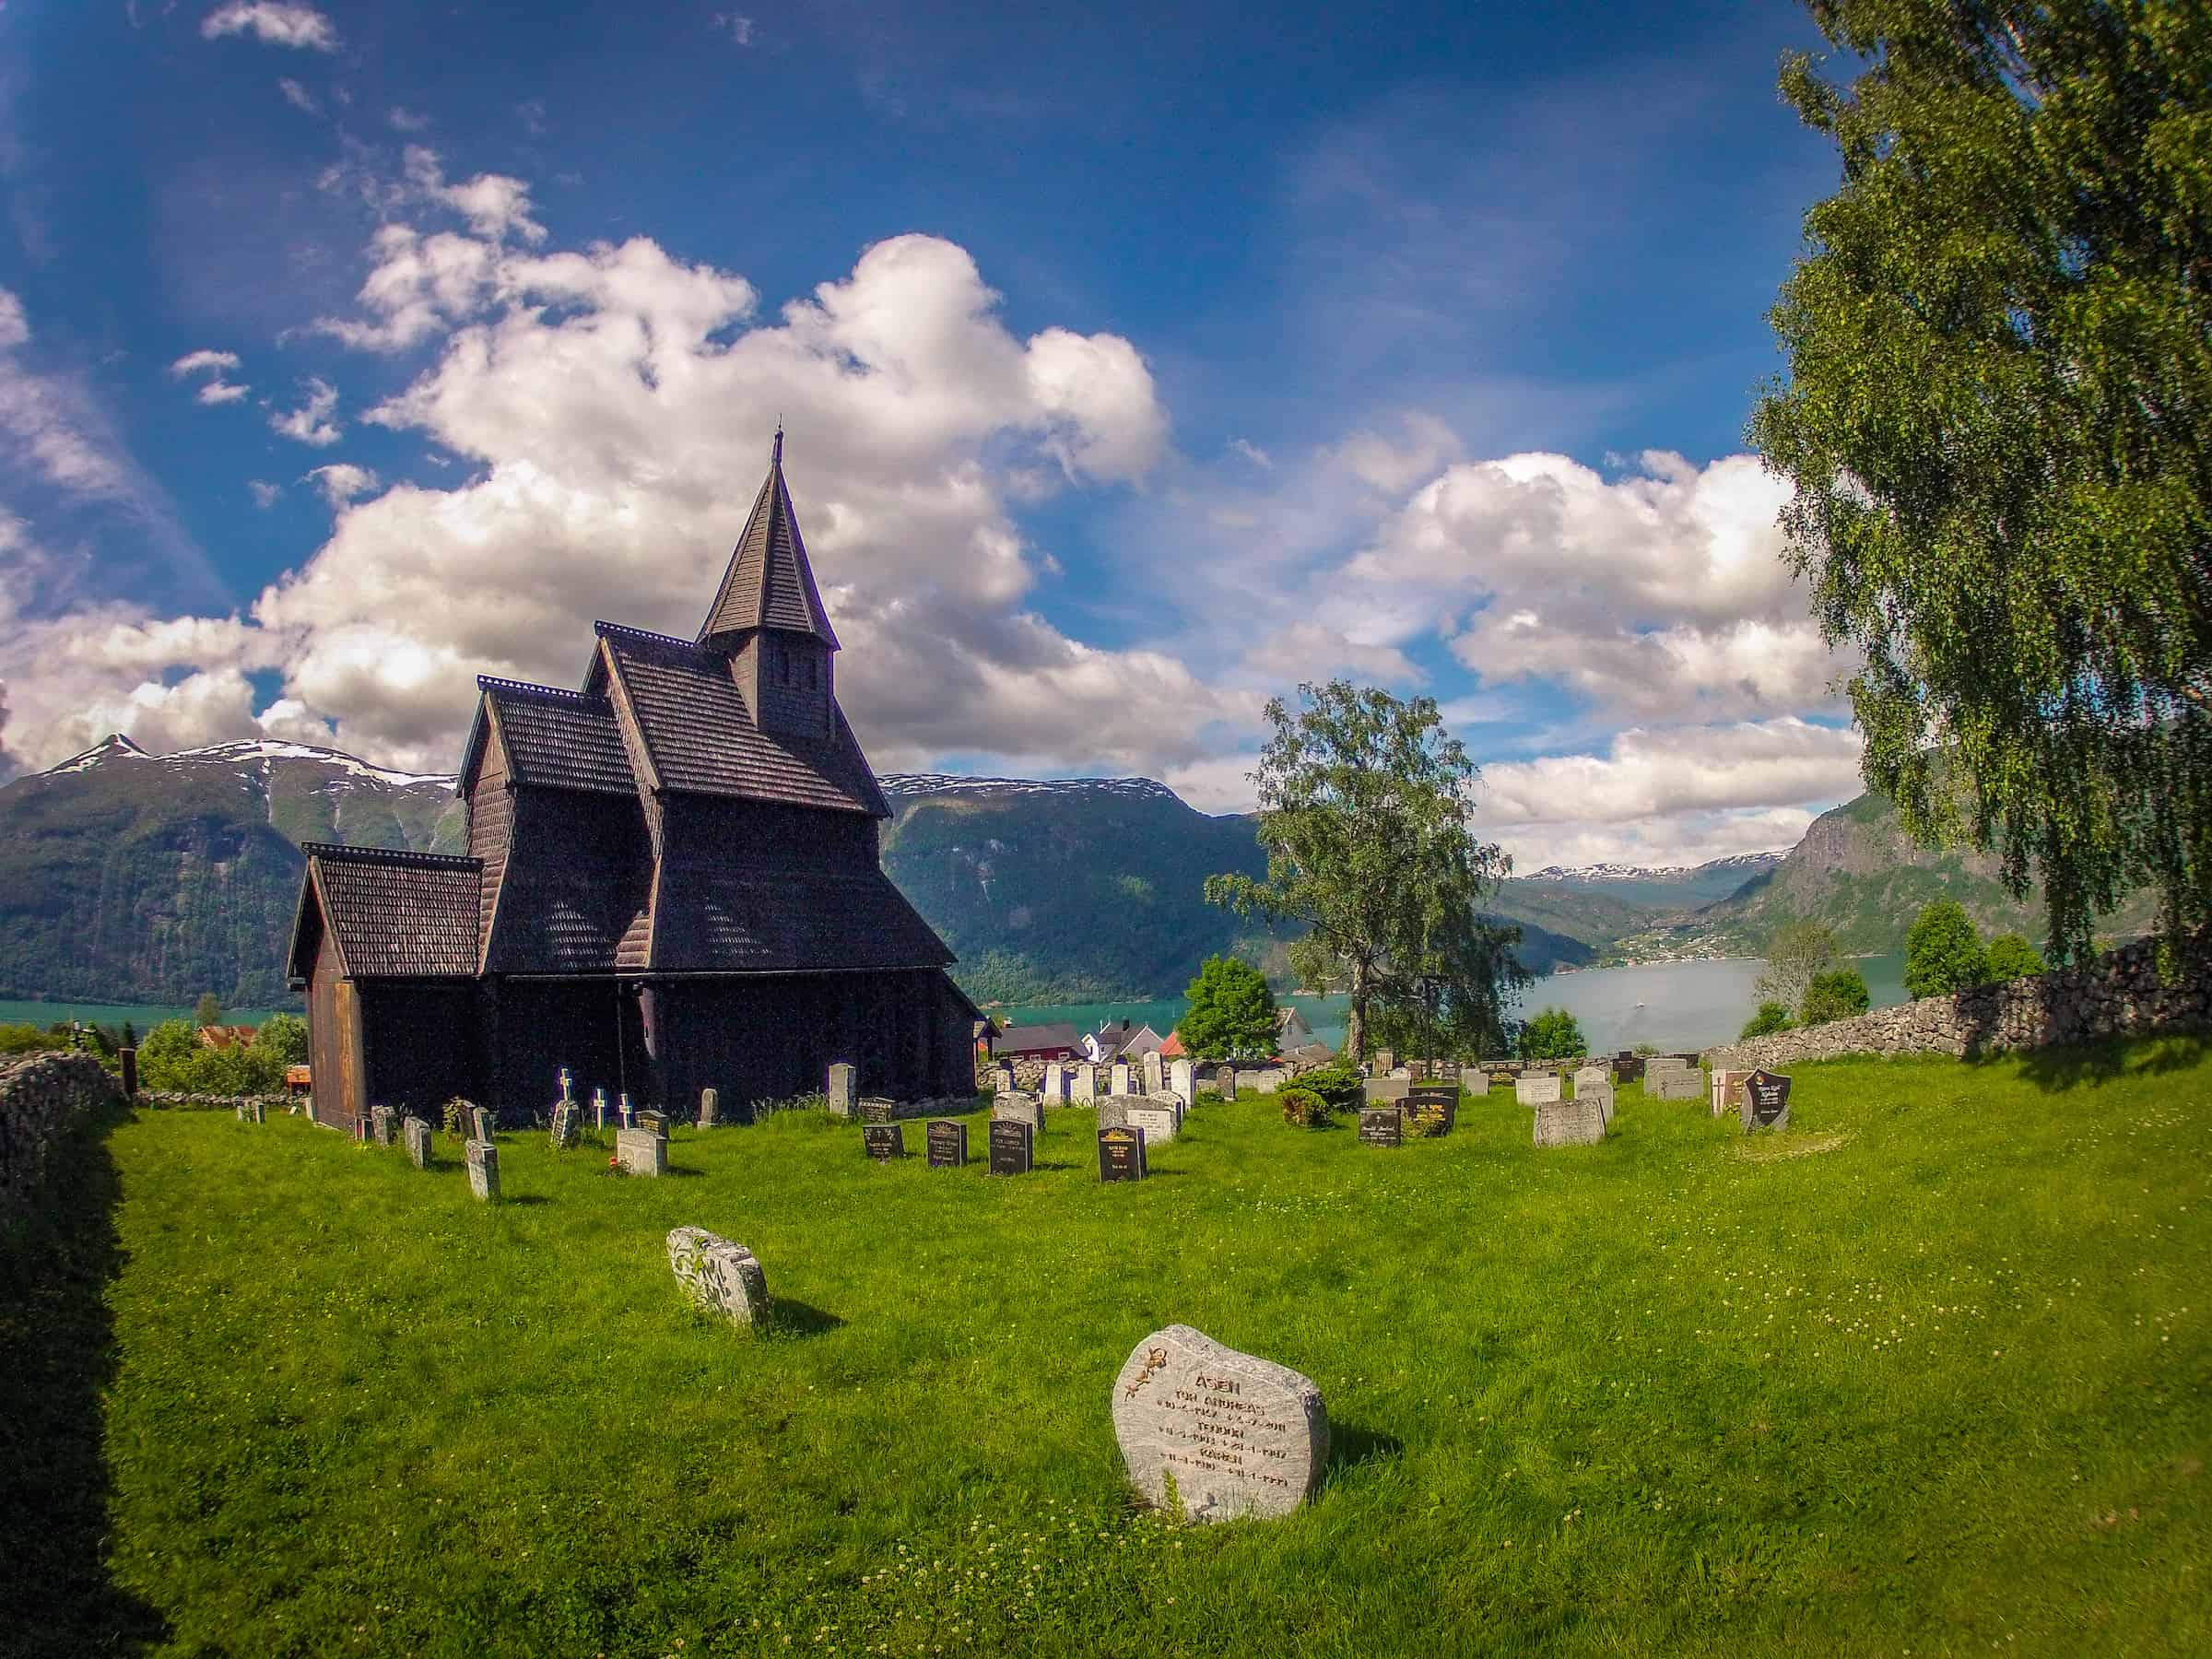 Fjords of Norway: Urnes Stave Church